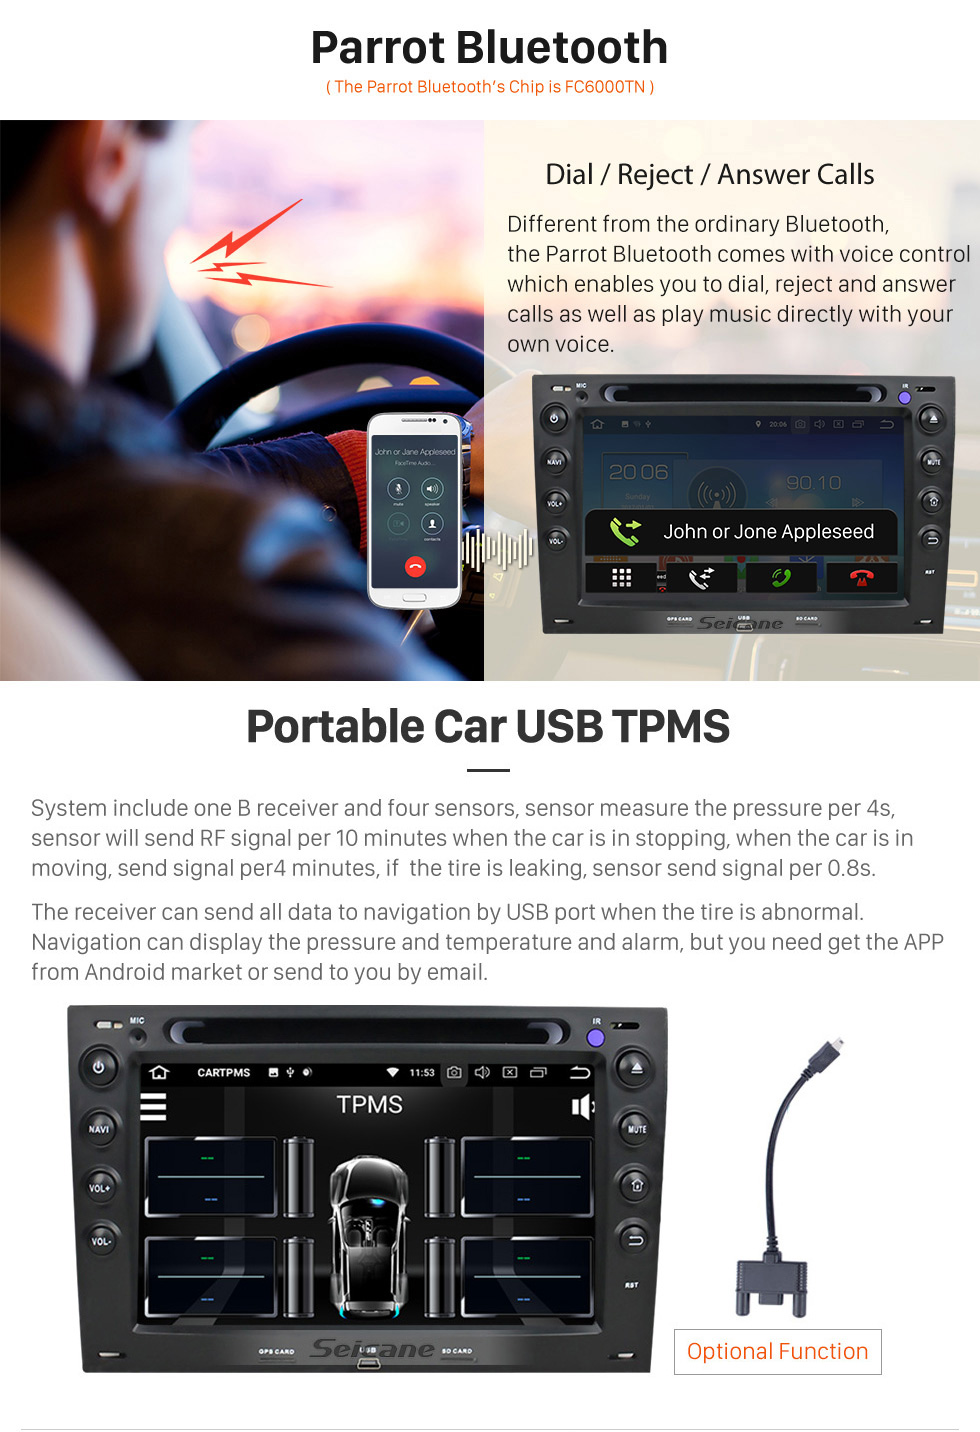 Seicane Android 8.0 Autoradio GPS Stereo for 2003-2010 Renault Megane with Bluetooth Mirror Link OBD2 3G WiFi CD DVD Player Steering Wheel Control HD 1080P Video